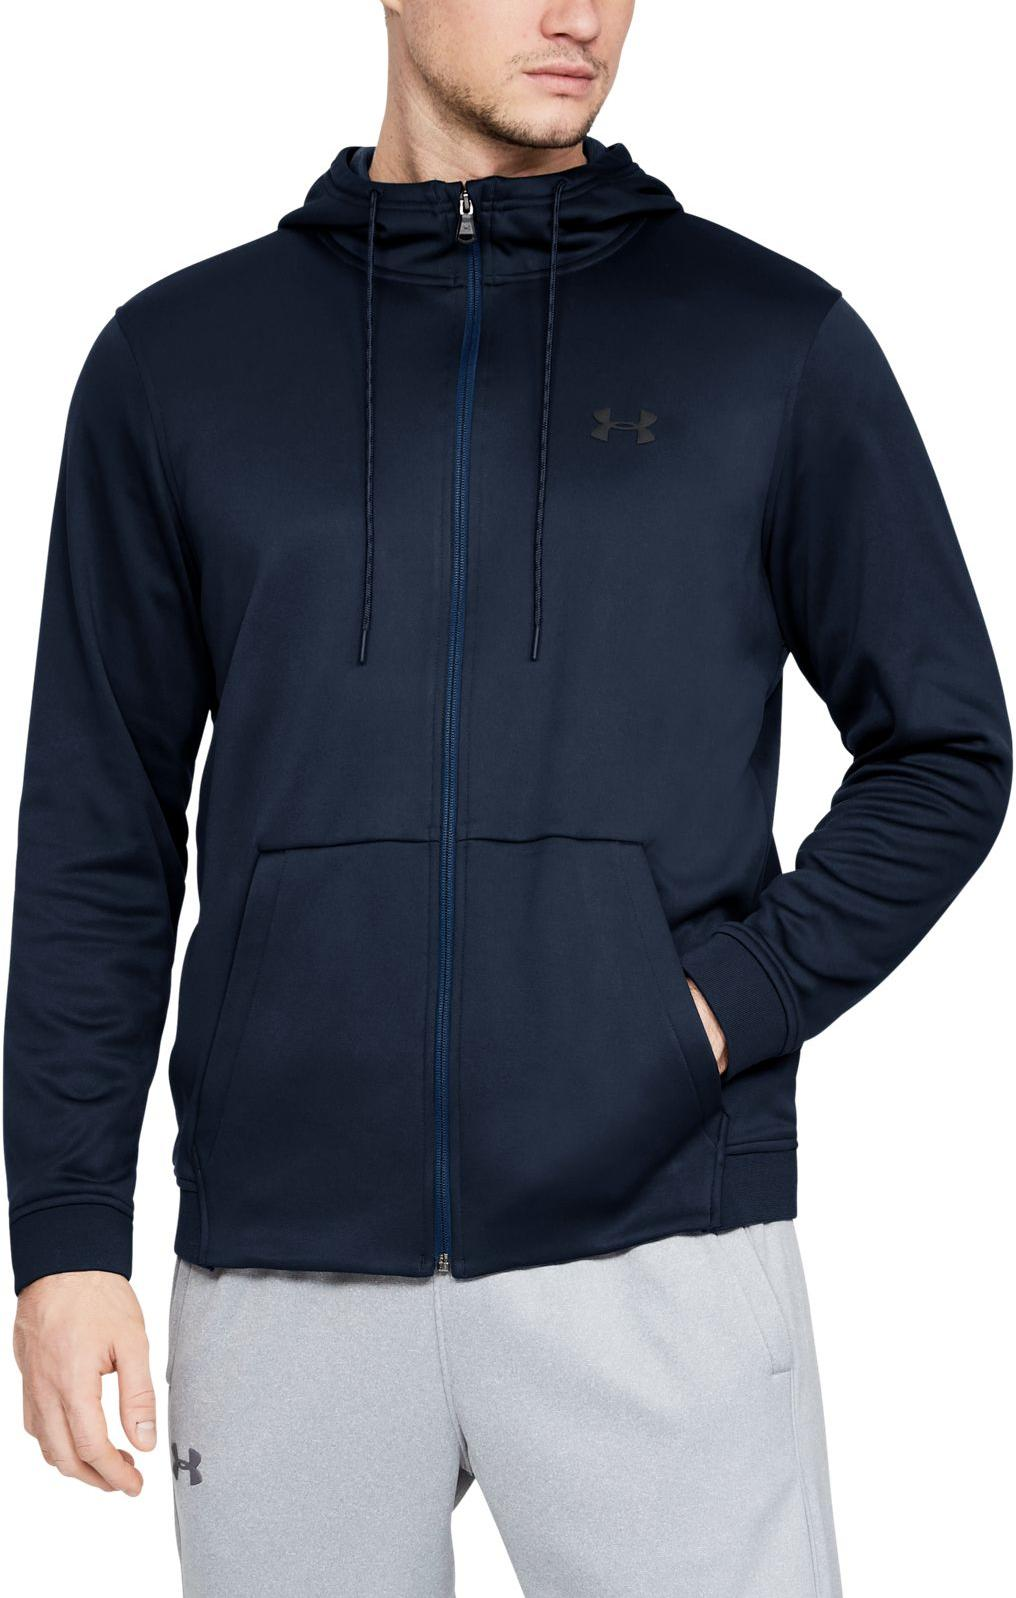 Hanorac cu gluga Under Armour ARMOUR FLEECE FZ HOODIE